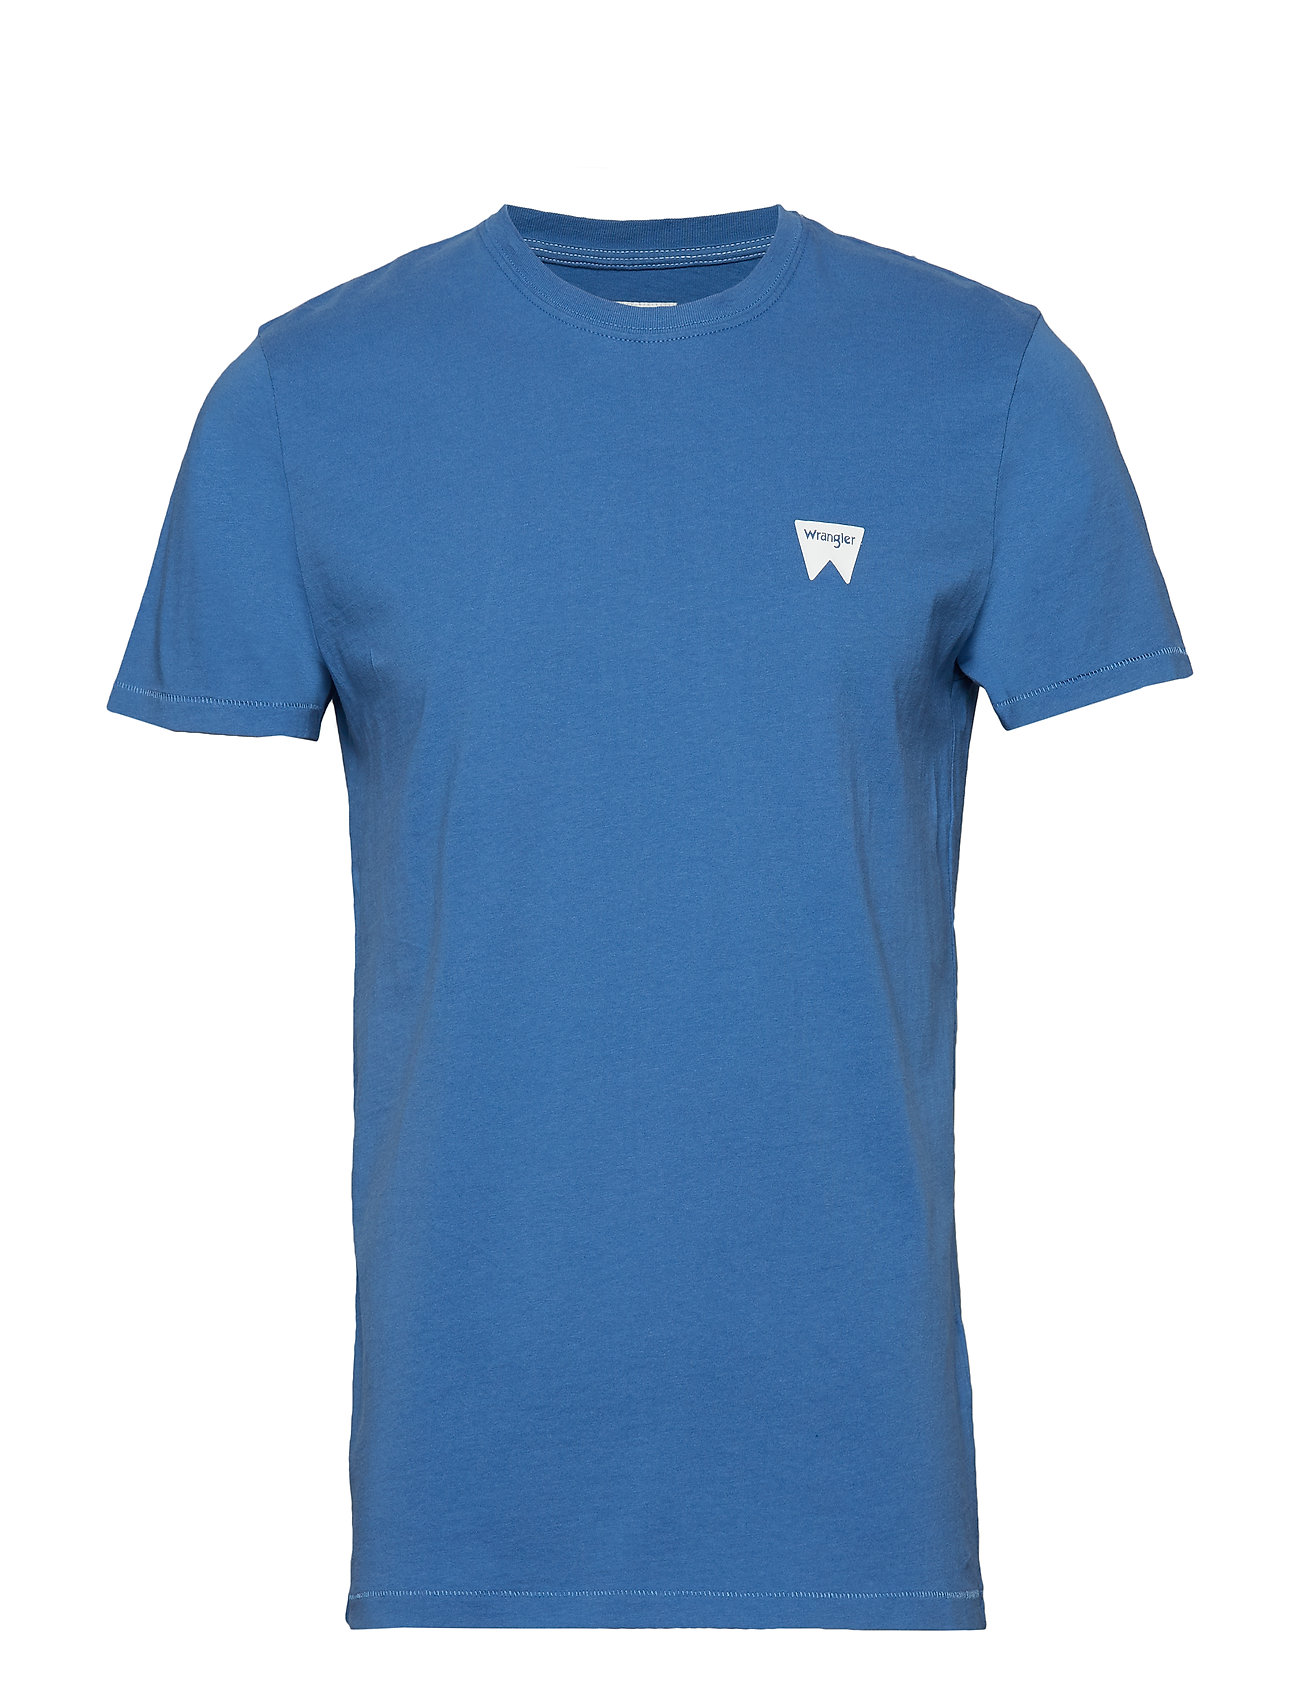 Wrangler SS SIGN OFF TEE - FEDERAL BLUE